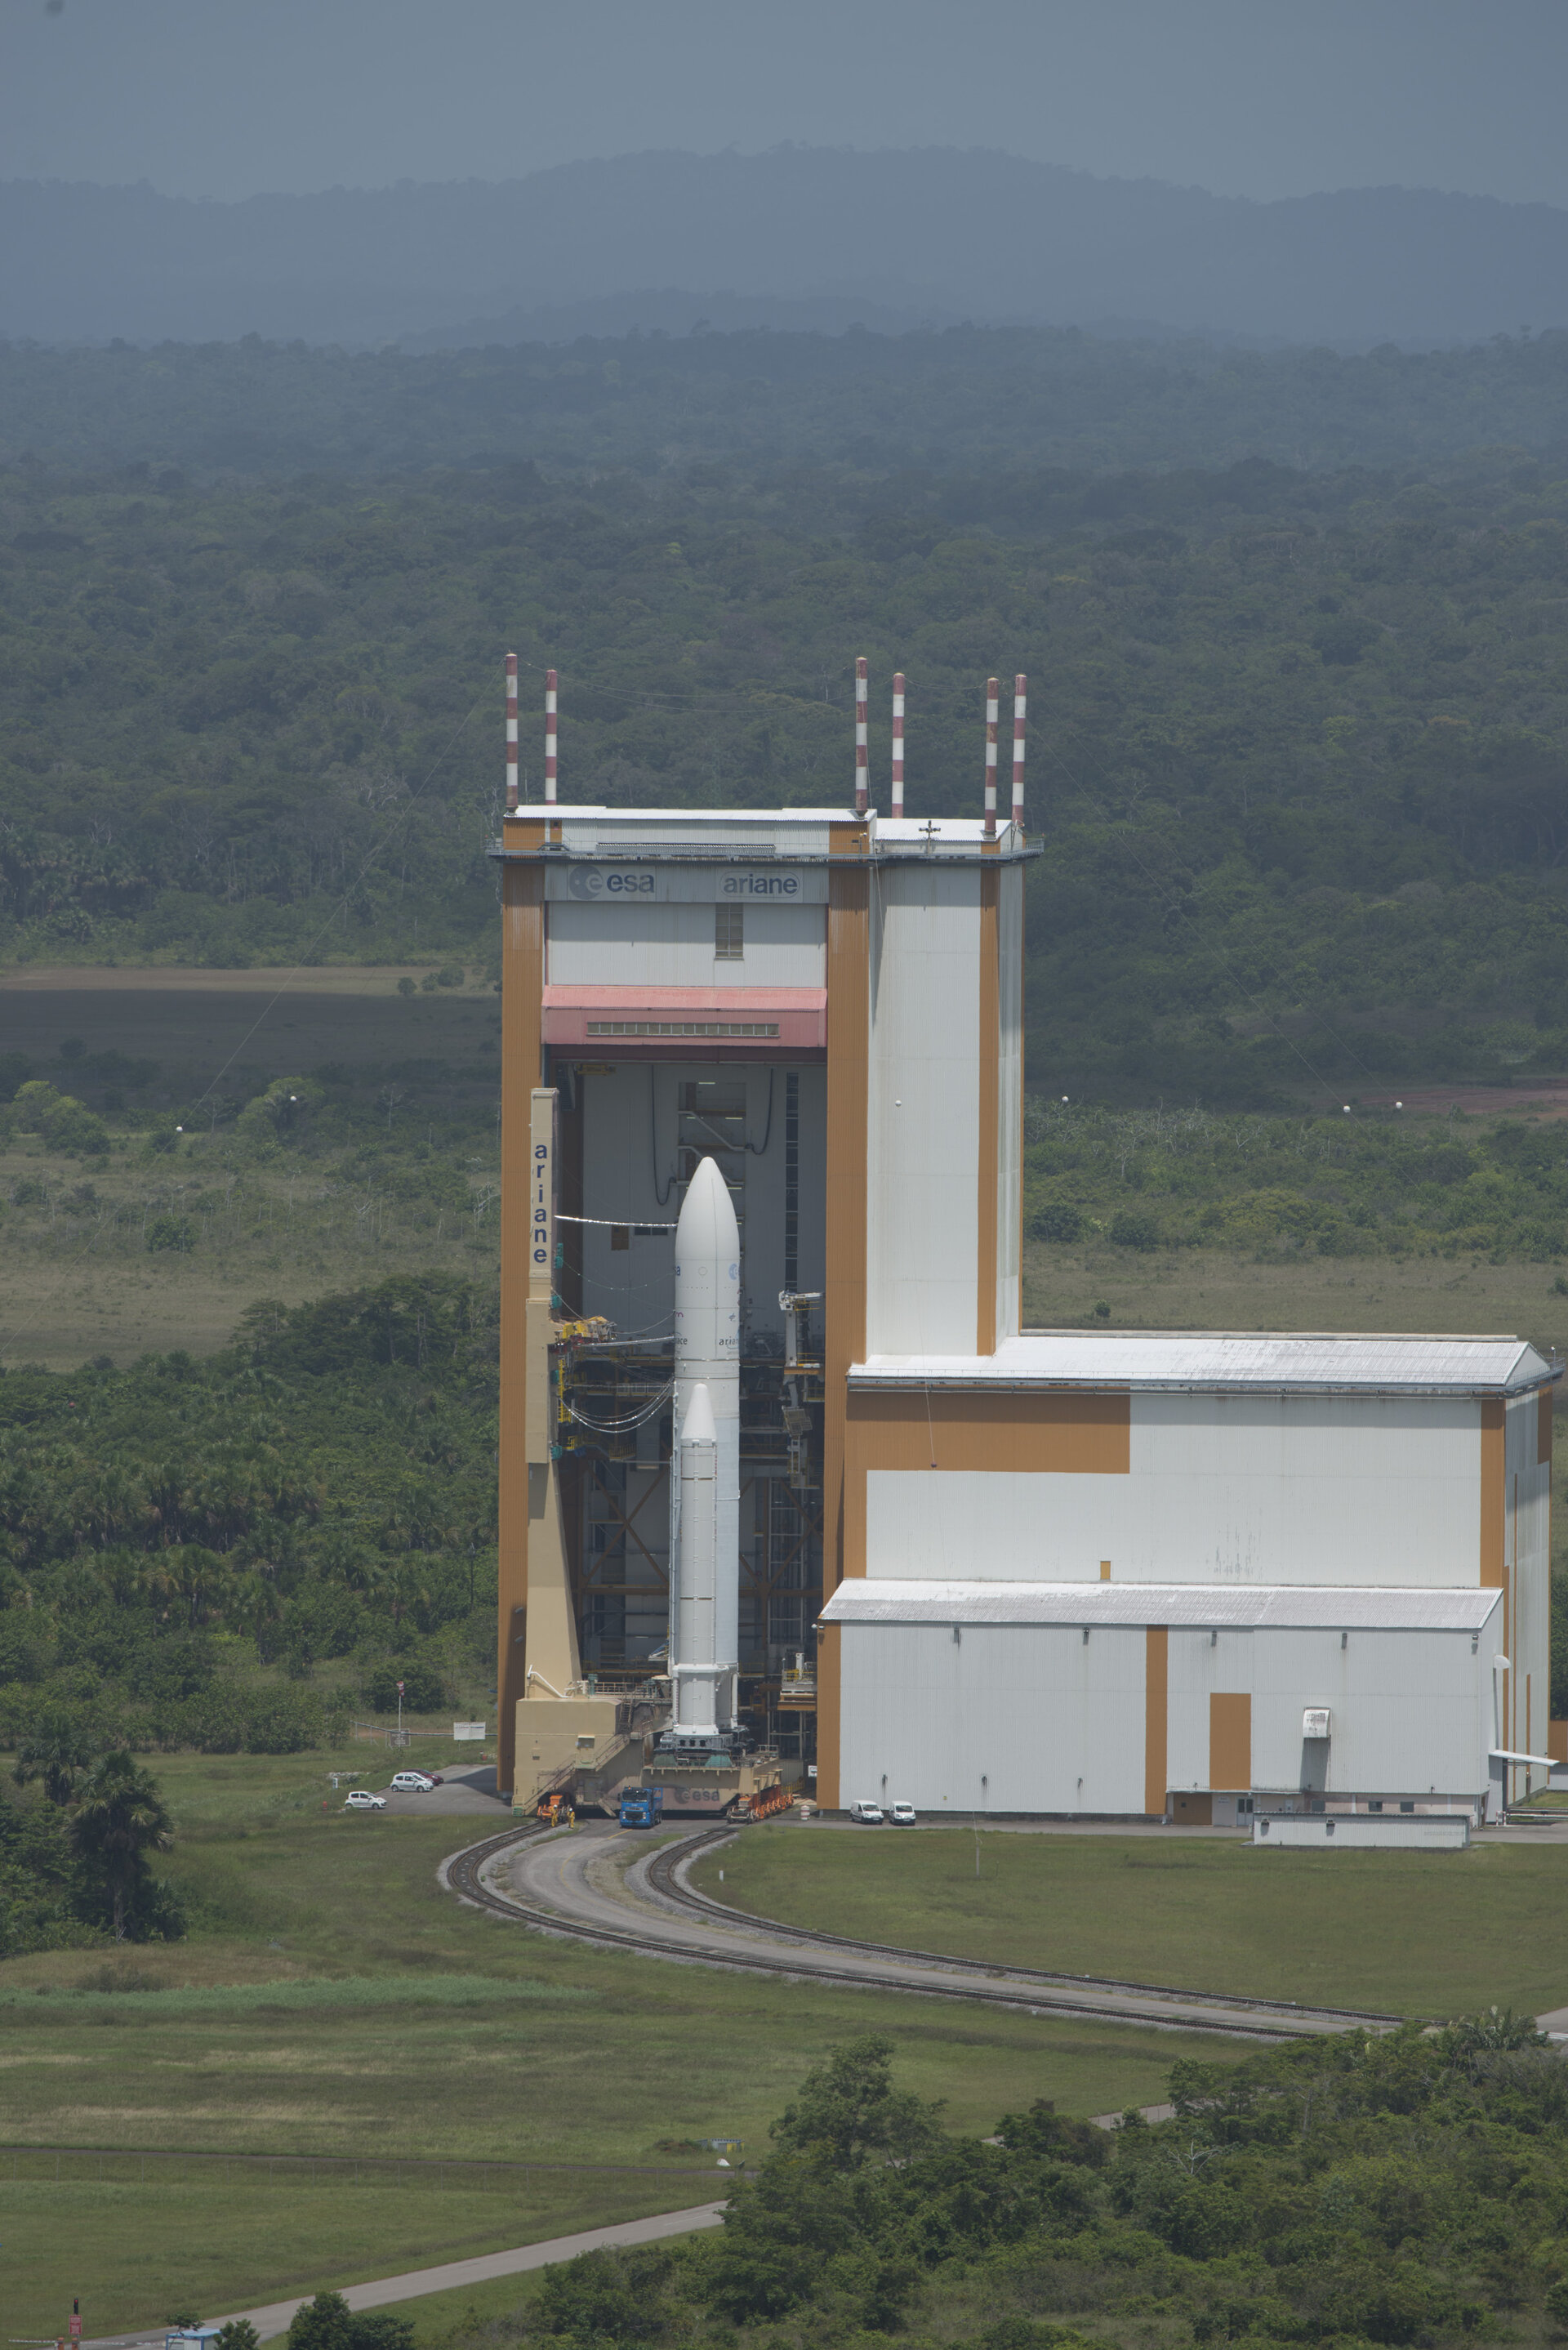 Ariane 5 VA 213 during transfer from BAF to the launch pad